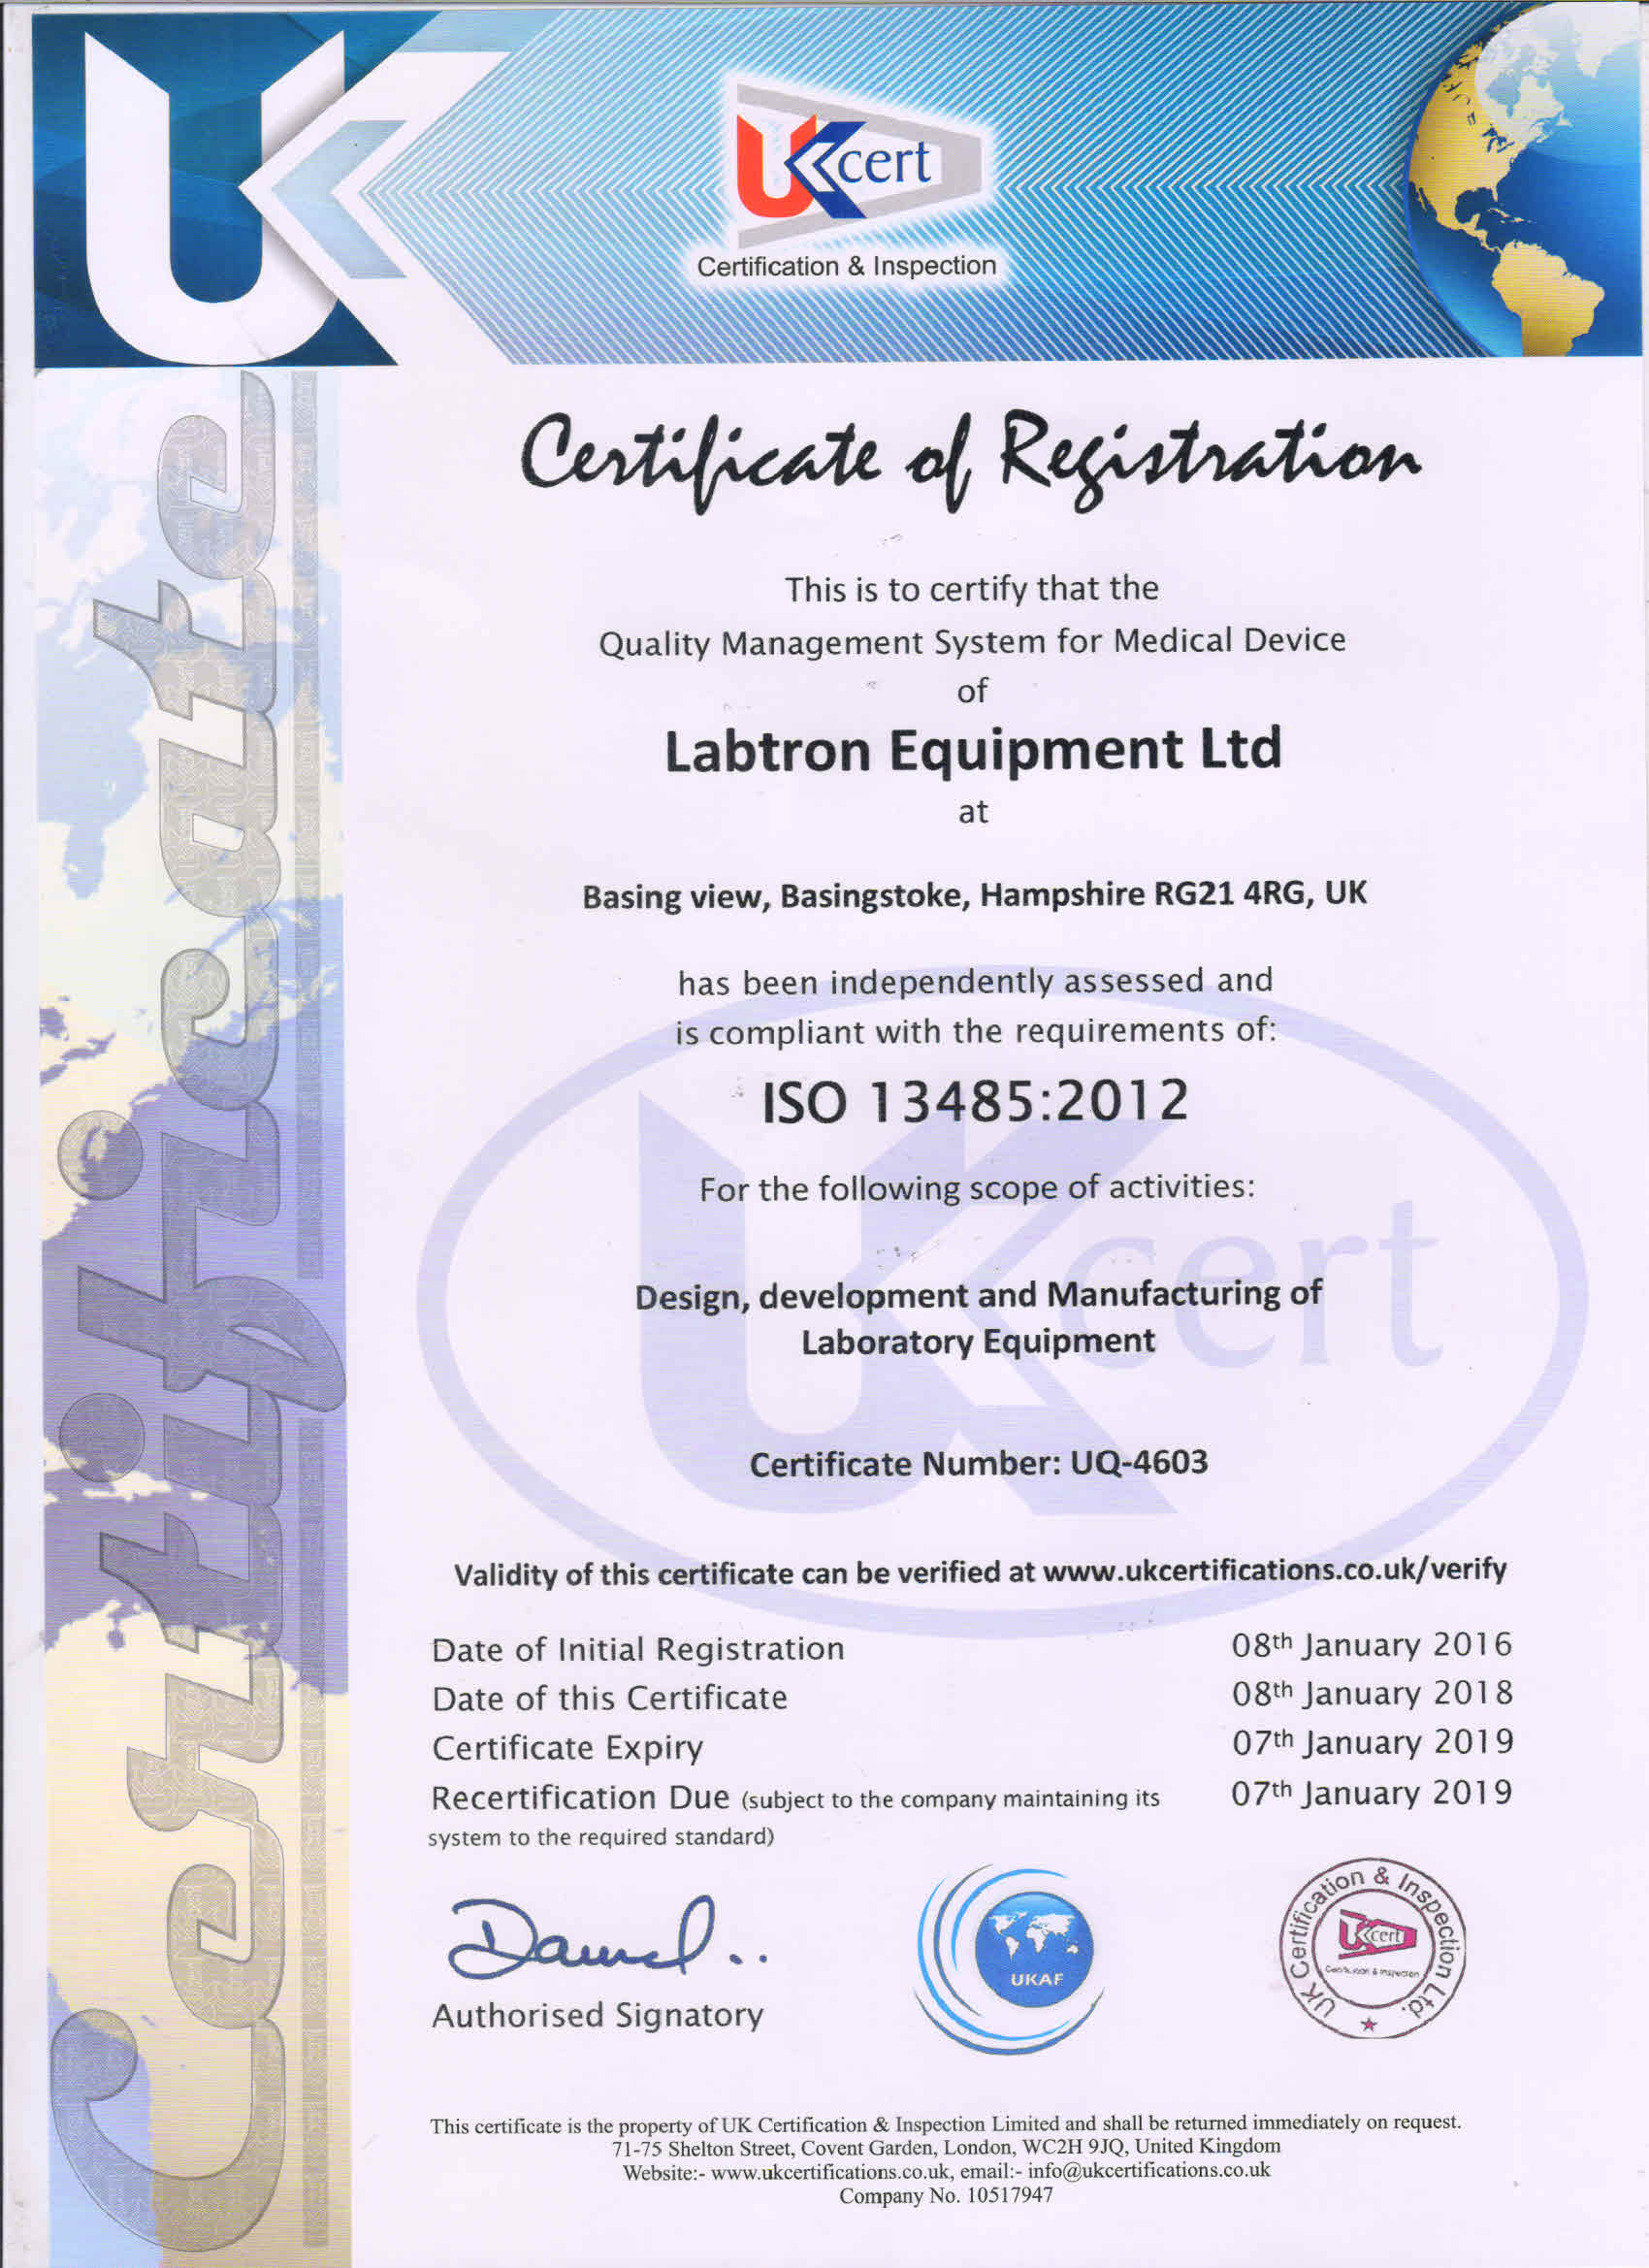 Labtron Equipment Ltd. GMP ISO 13485 UKCert : Labtron Certification